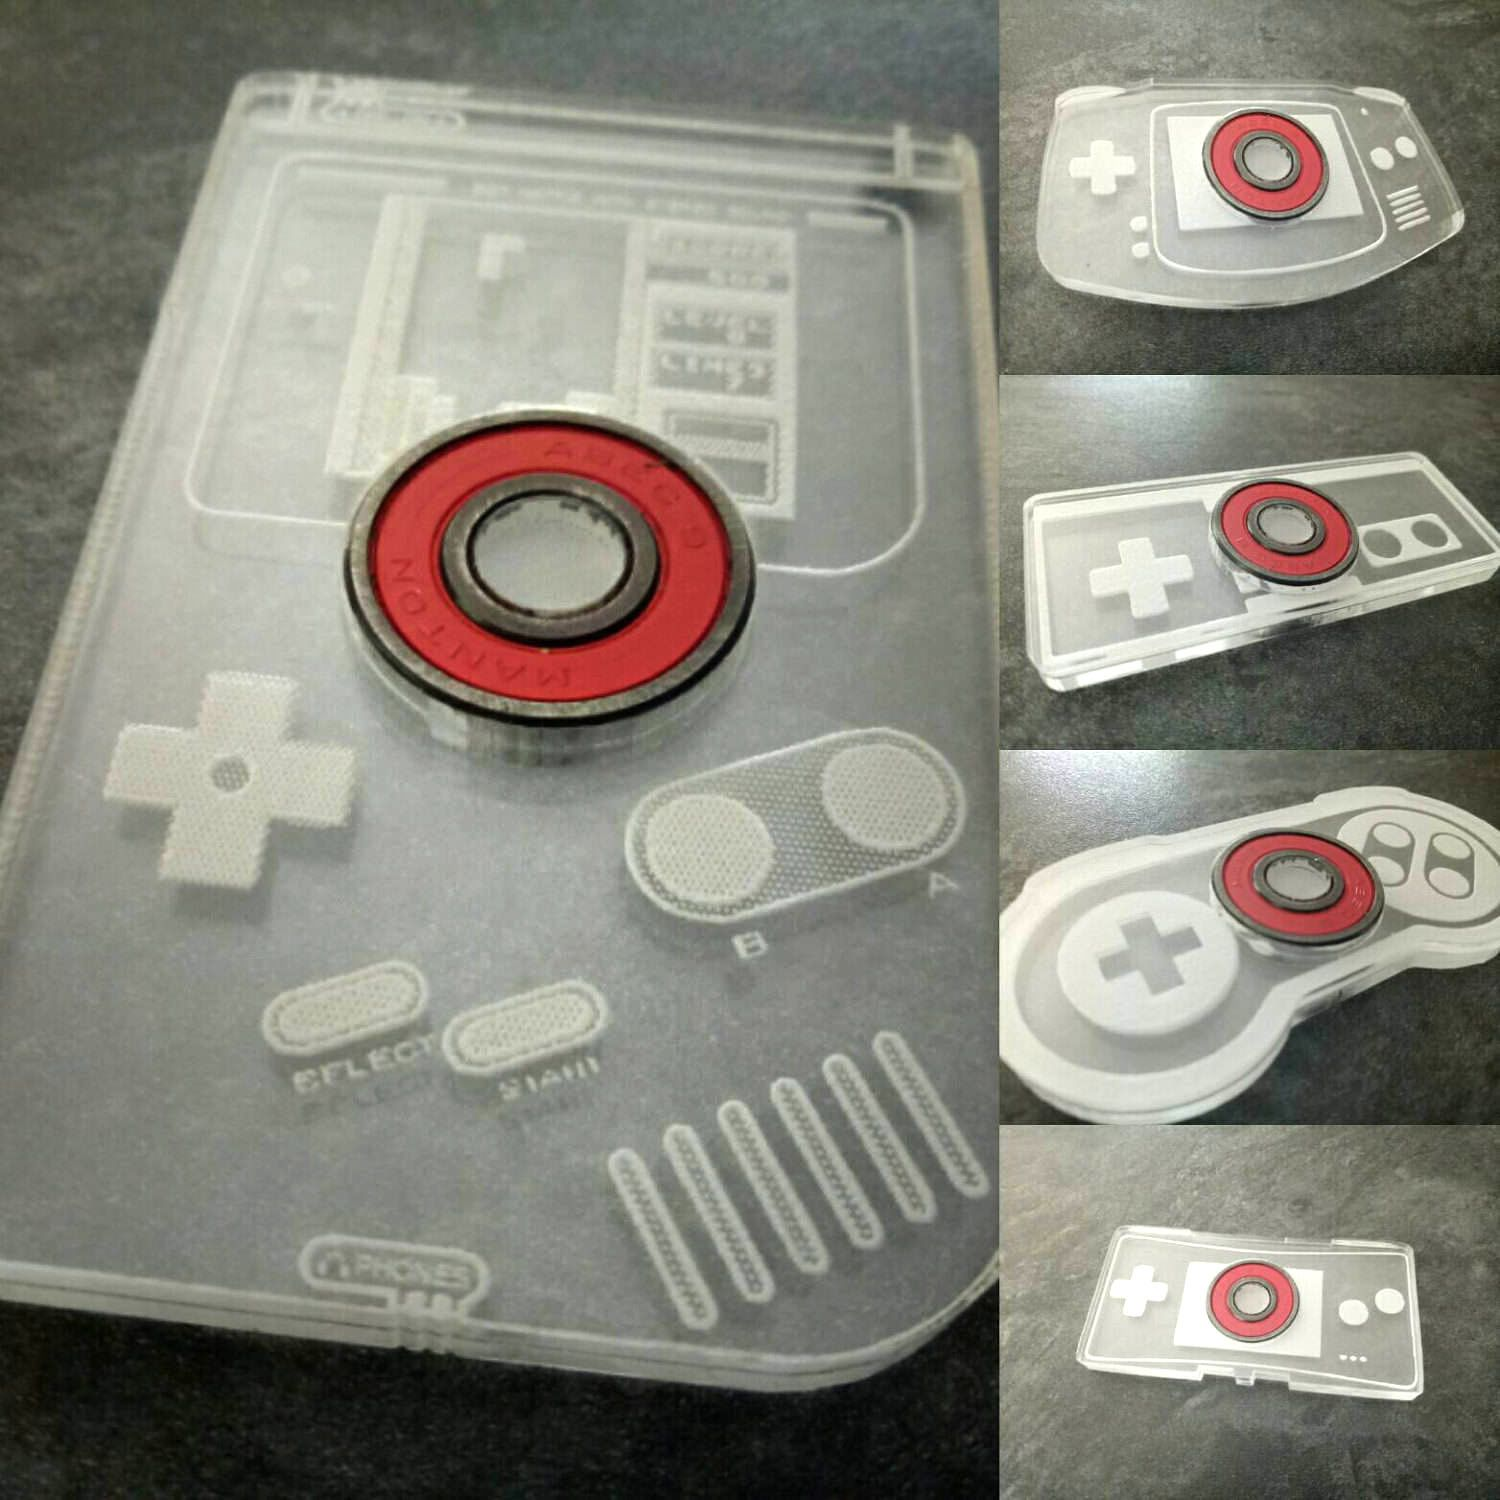 Retro Gaming Fidget Spinners | kawaii stuff for your house